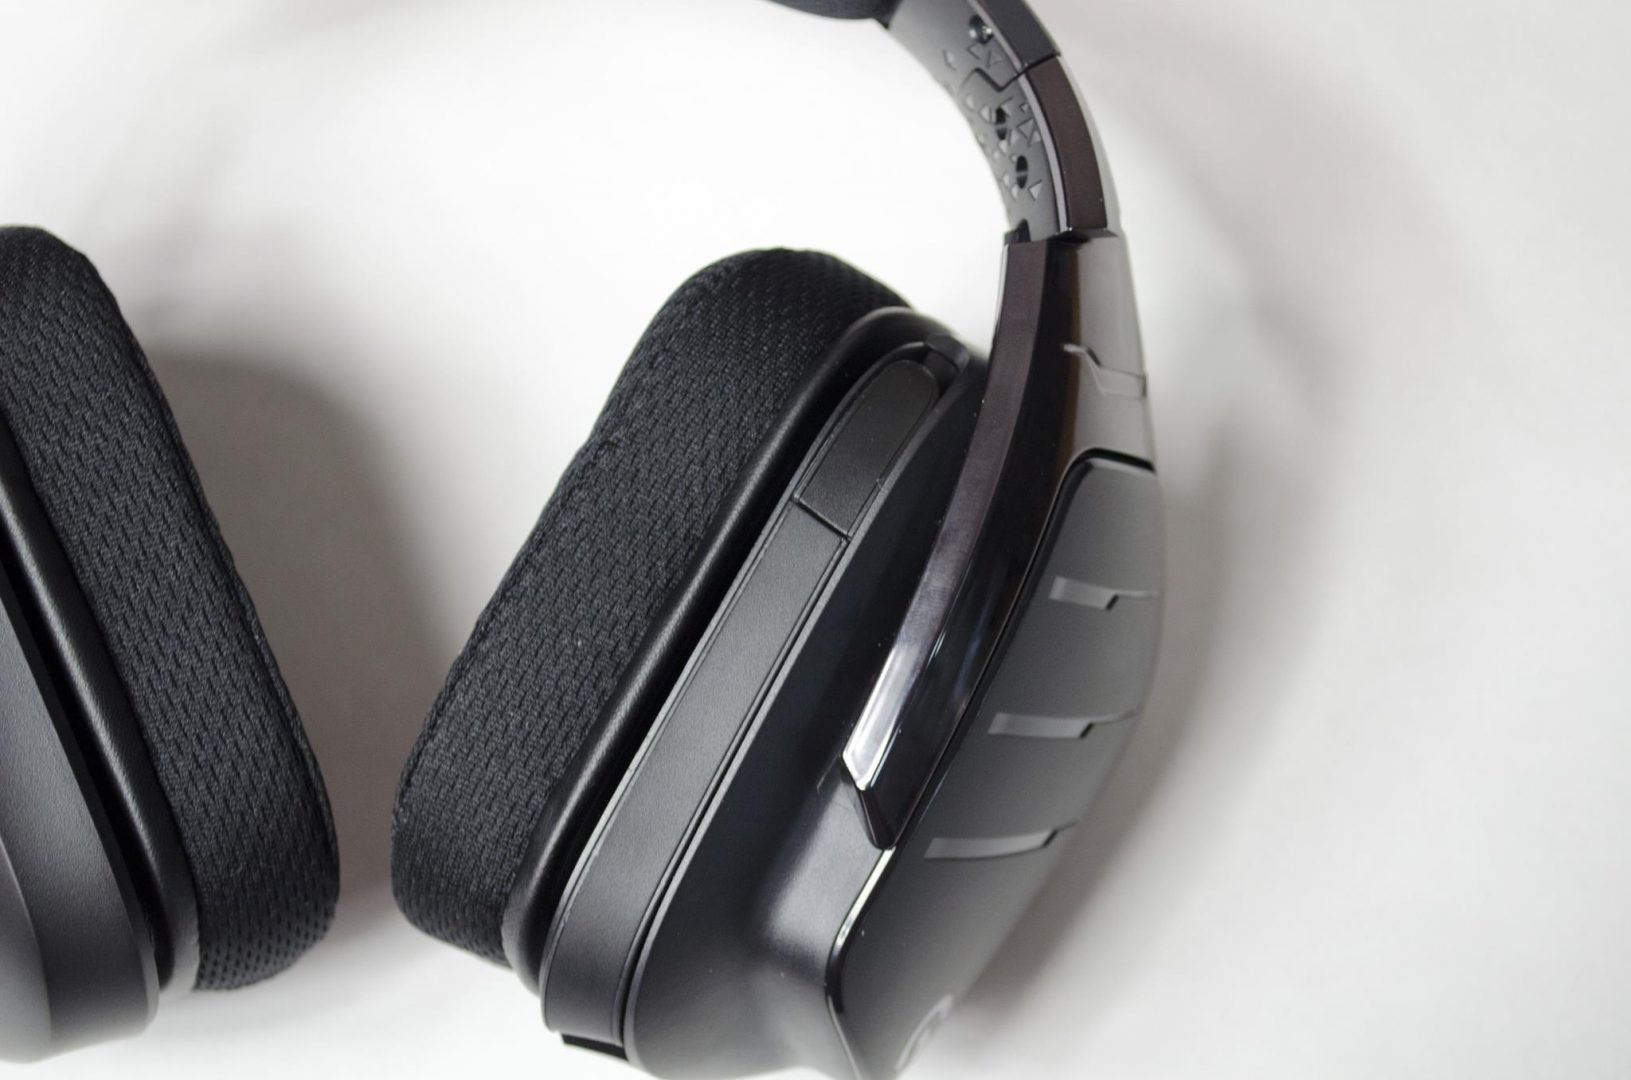 Logitech G633 artemis spectrum rgb 7.1 surround gaming headset review_11